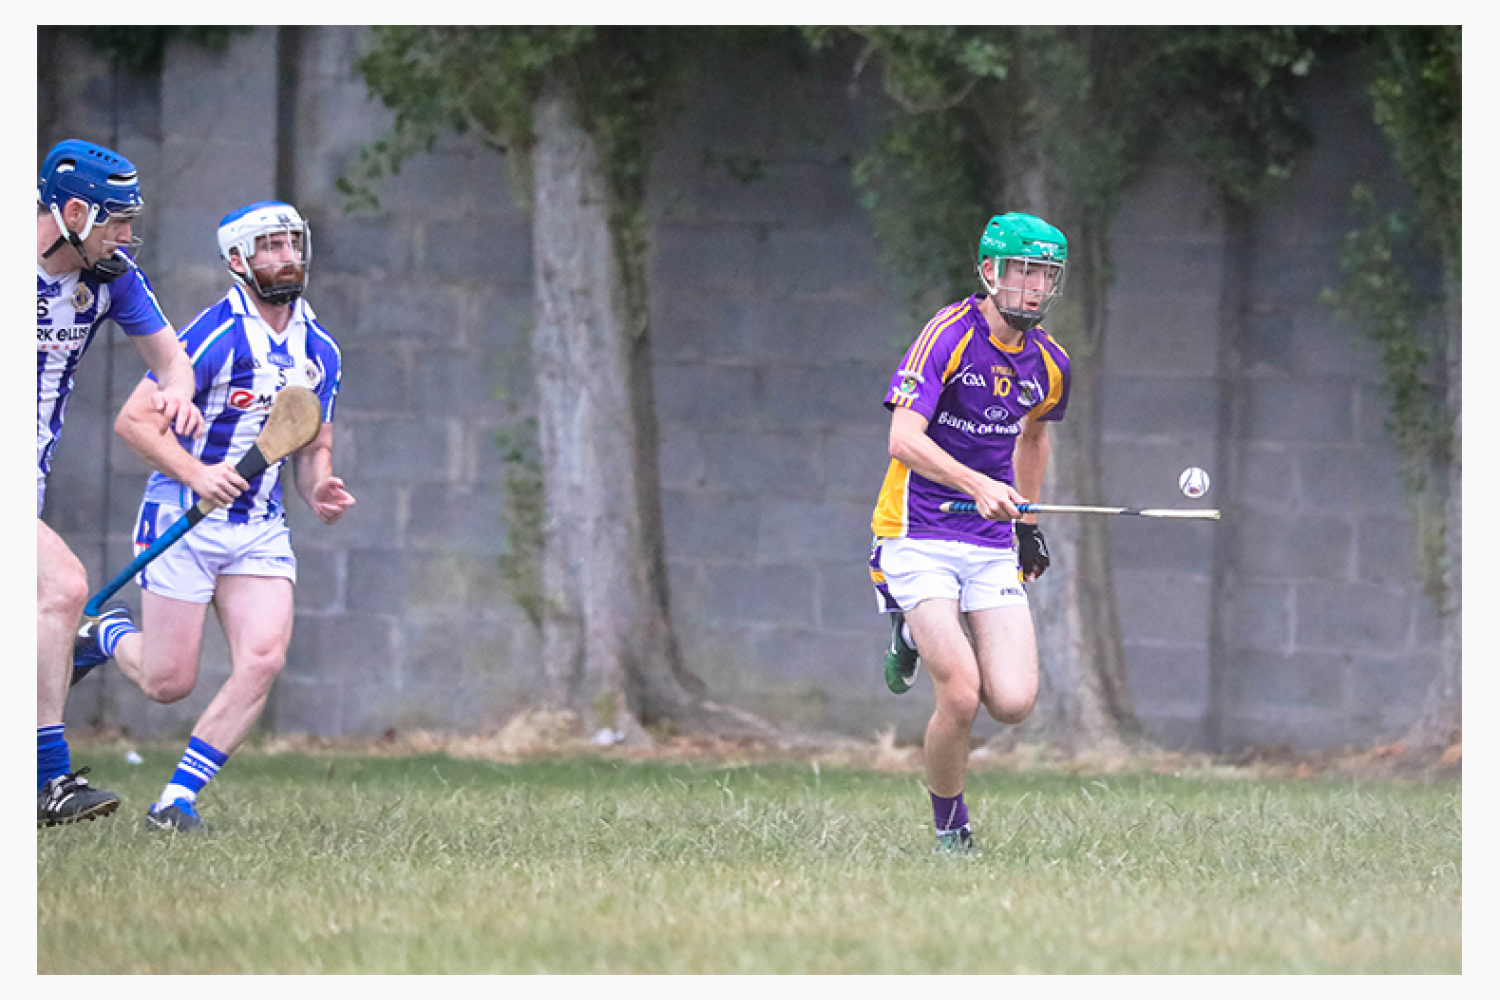 Photos from AHL4  team vs Ballyboden